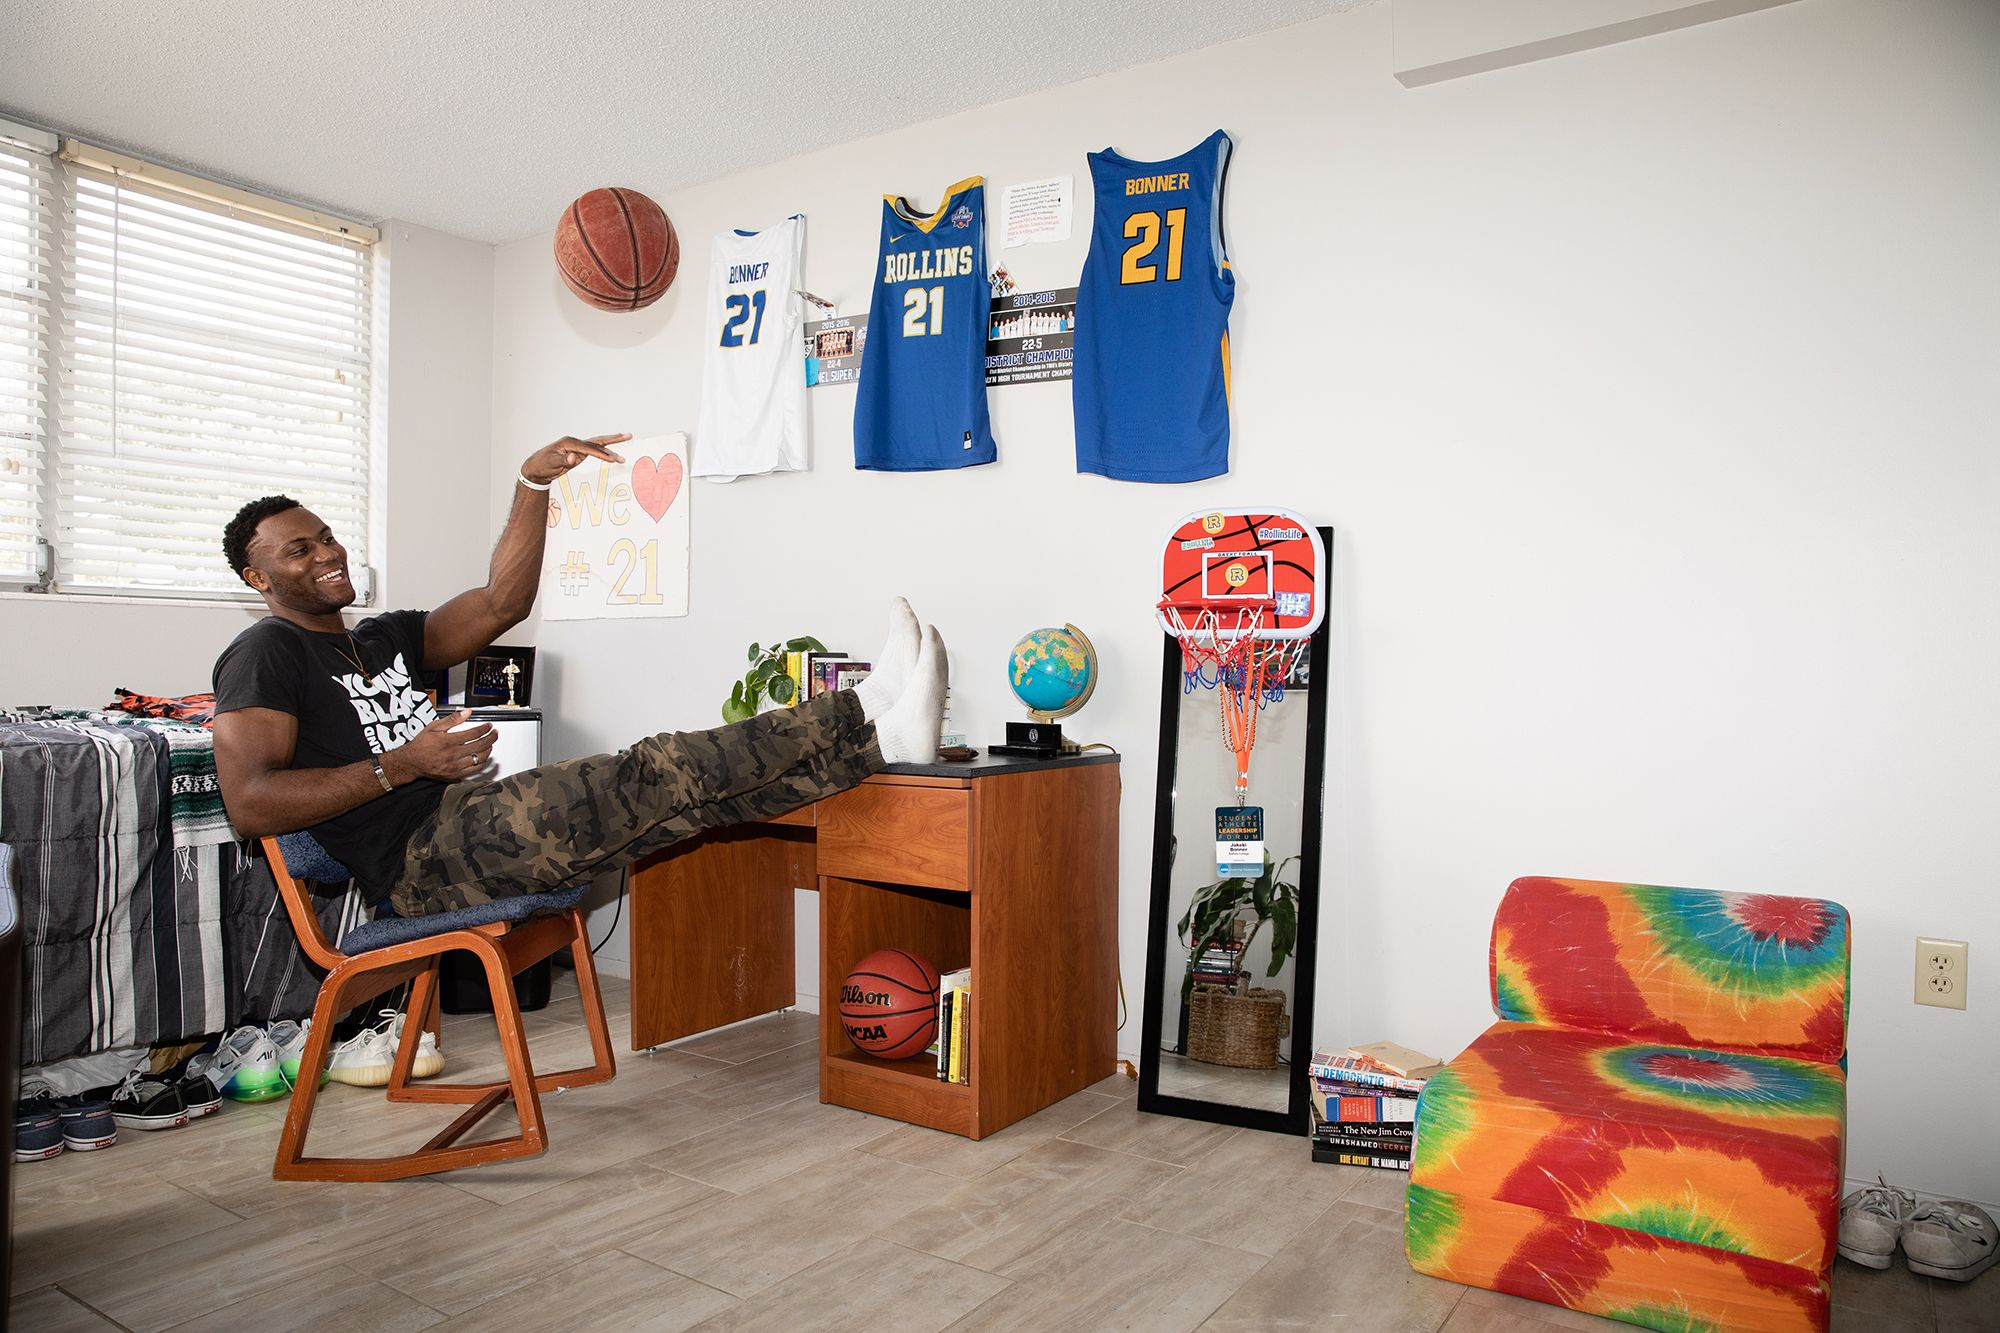 A player on the basketball team shooting a basketball in his dorm room.